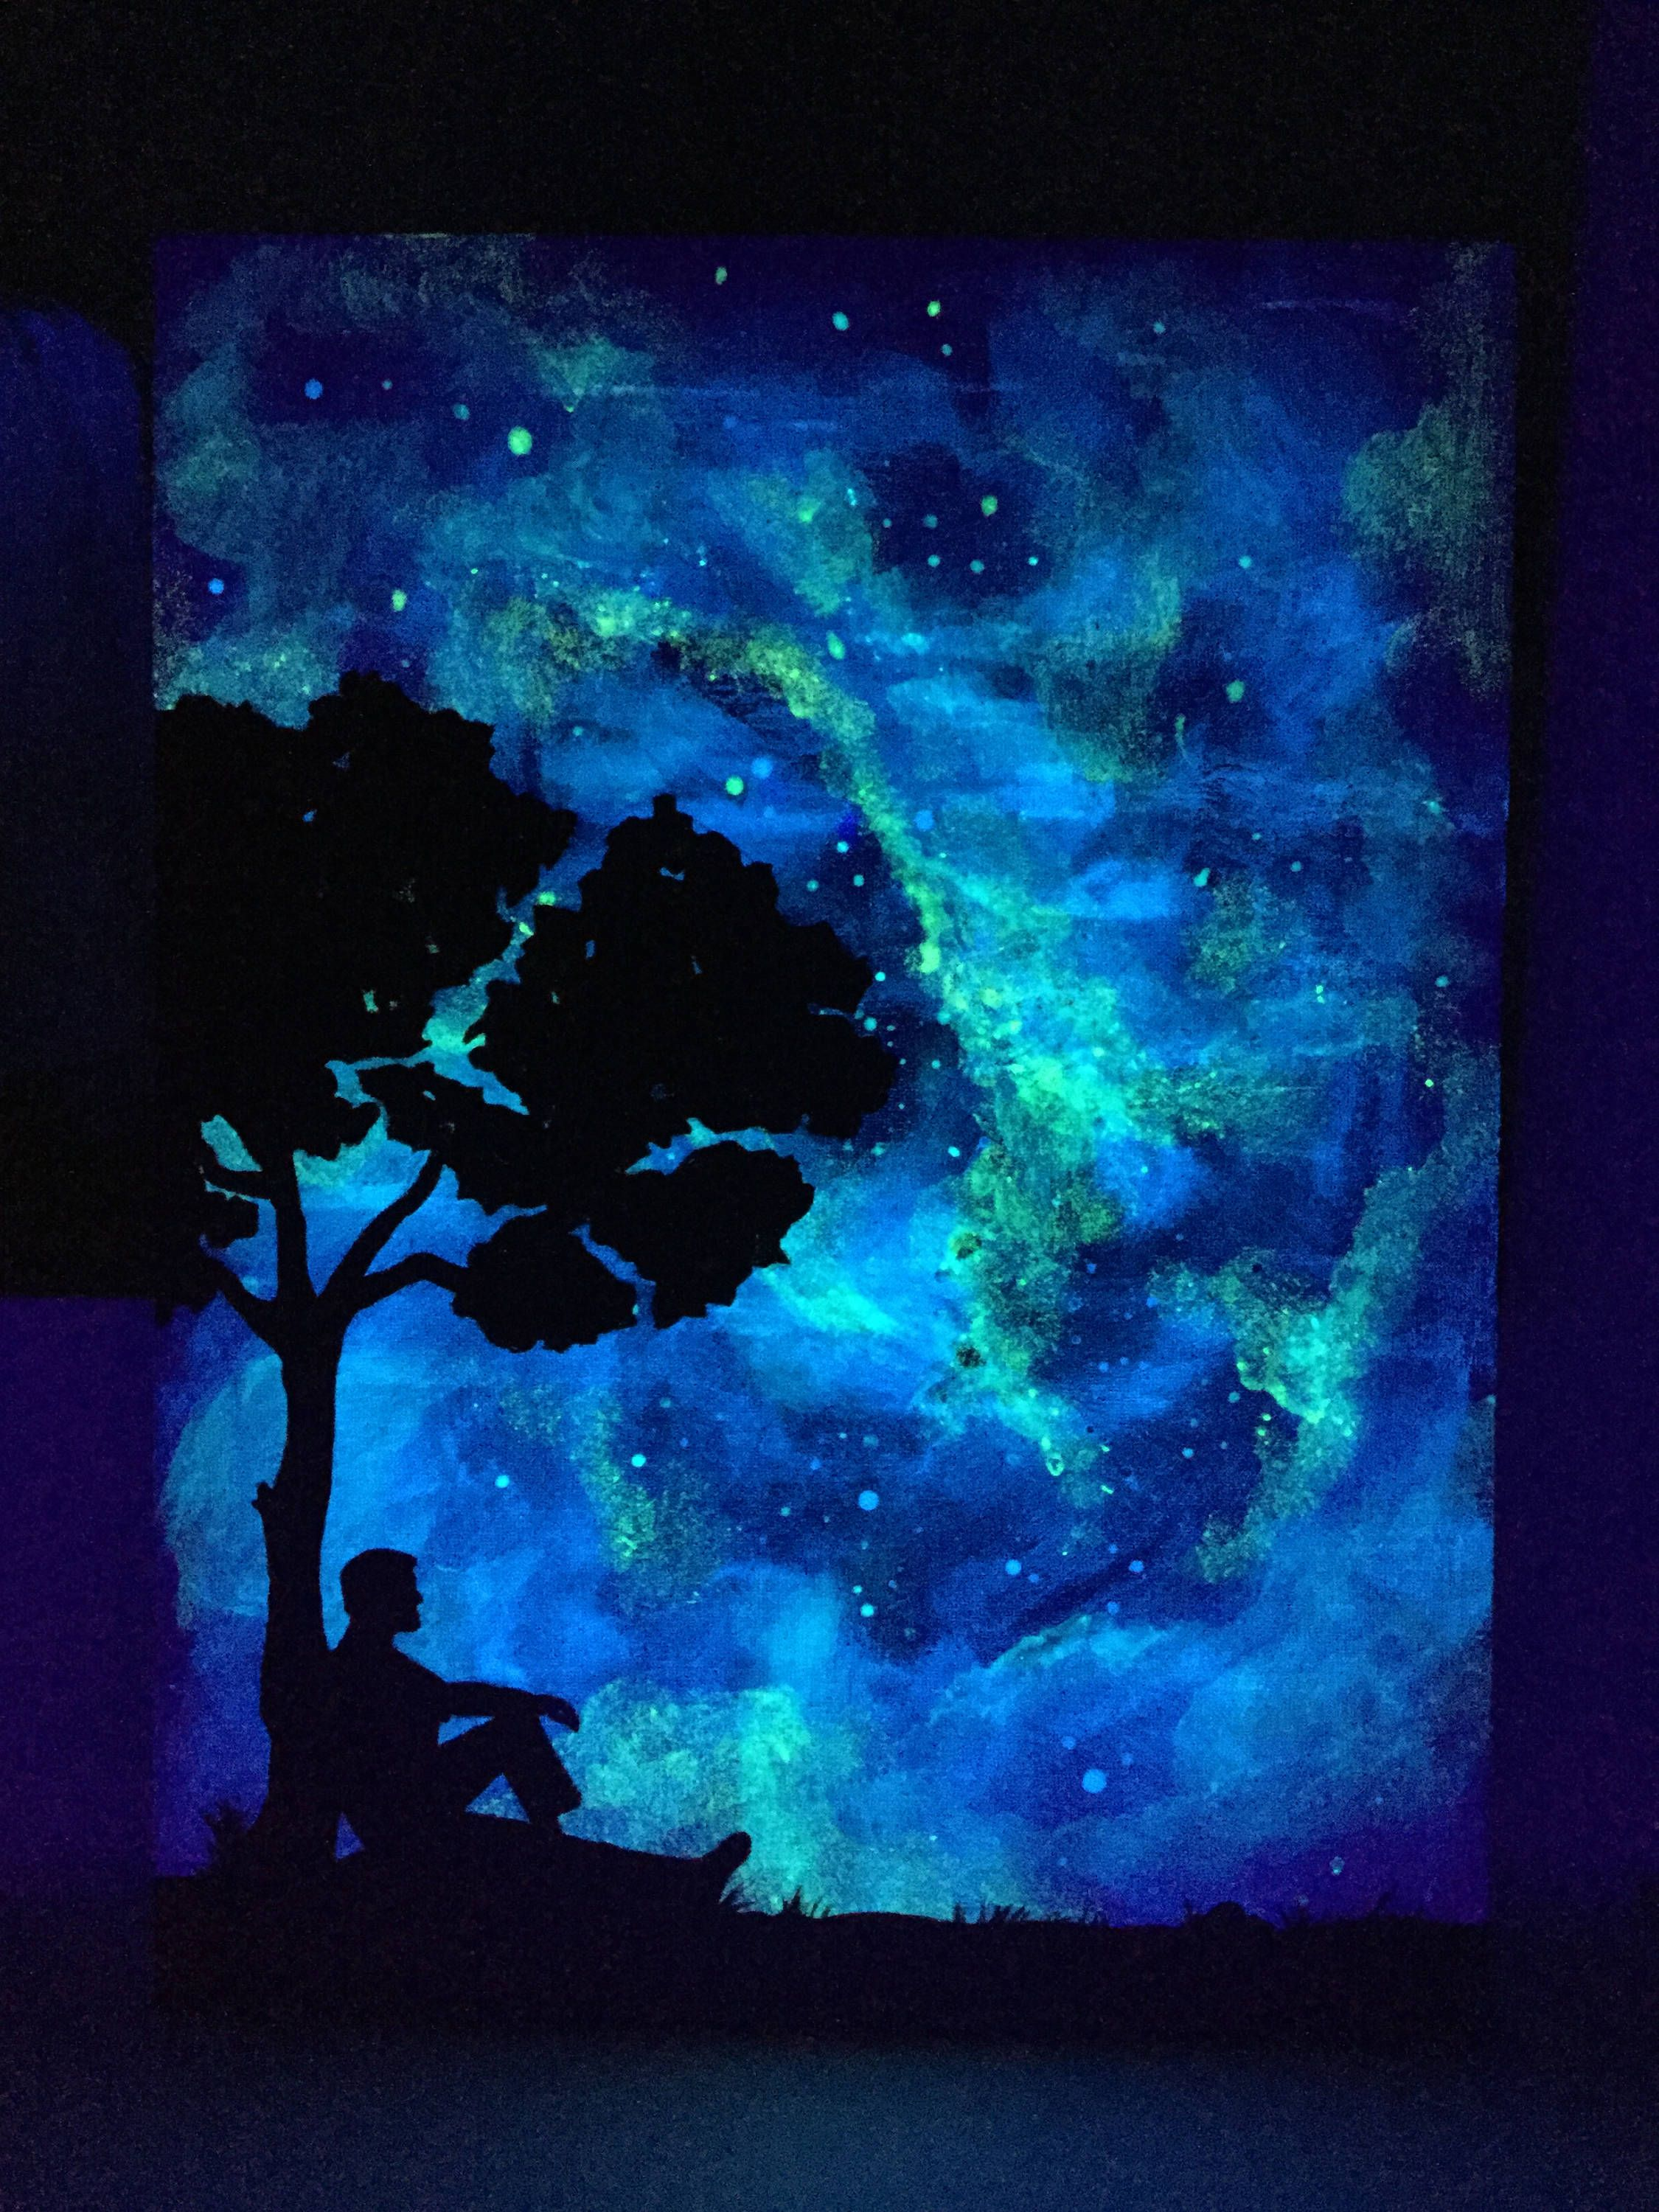 Glow Art Pensive Silhouette Under The Stars Glow In The Dark Tree Painting Cloudy Sky Changes To A Galaxy Backdrop For This Resting Man In 2021 Glowing Art Dark Art Paintings